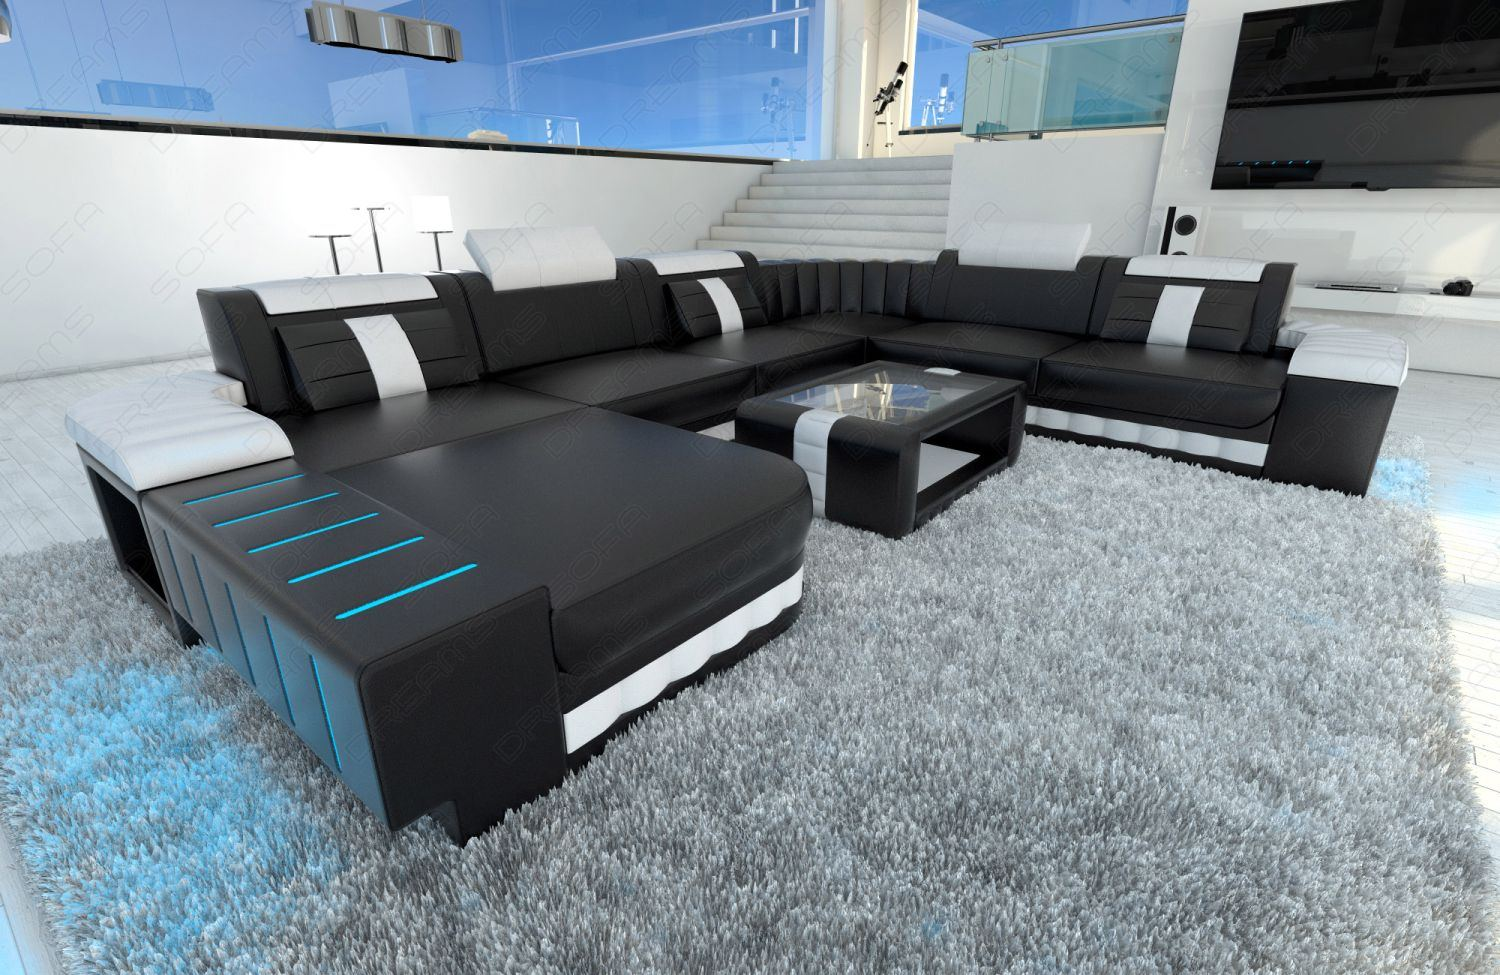 xxl sectional sofa bellagio led u shaped black white ebay. Black Bedroom Furniture Sets. Home Design Ideas